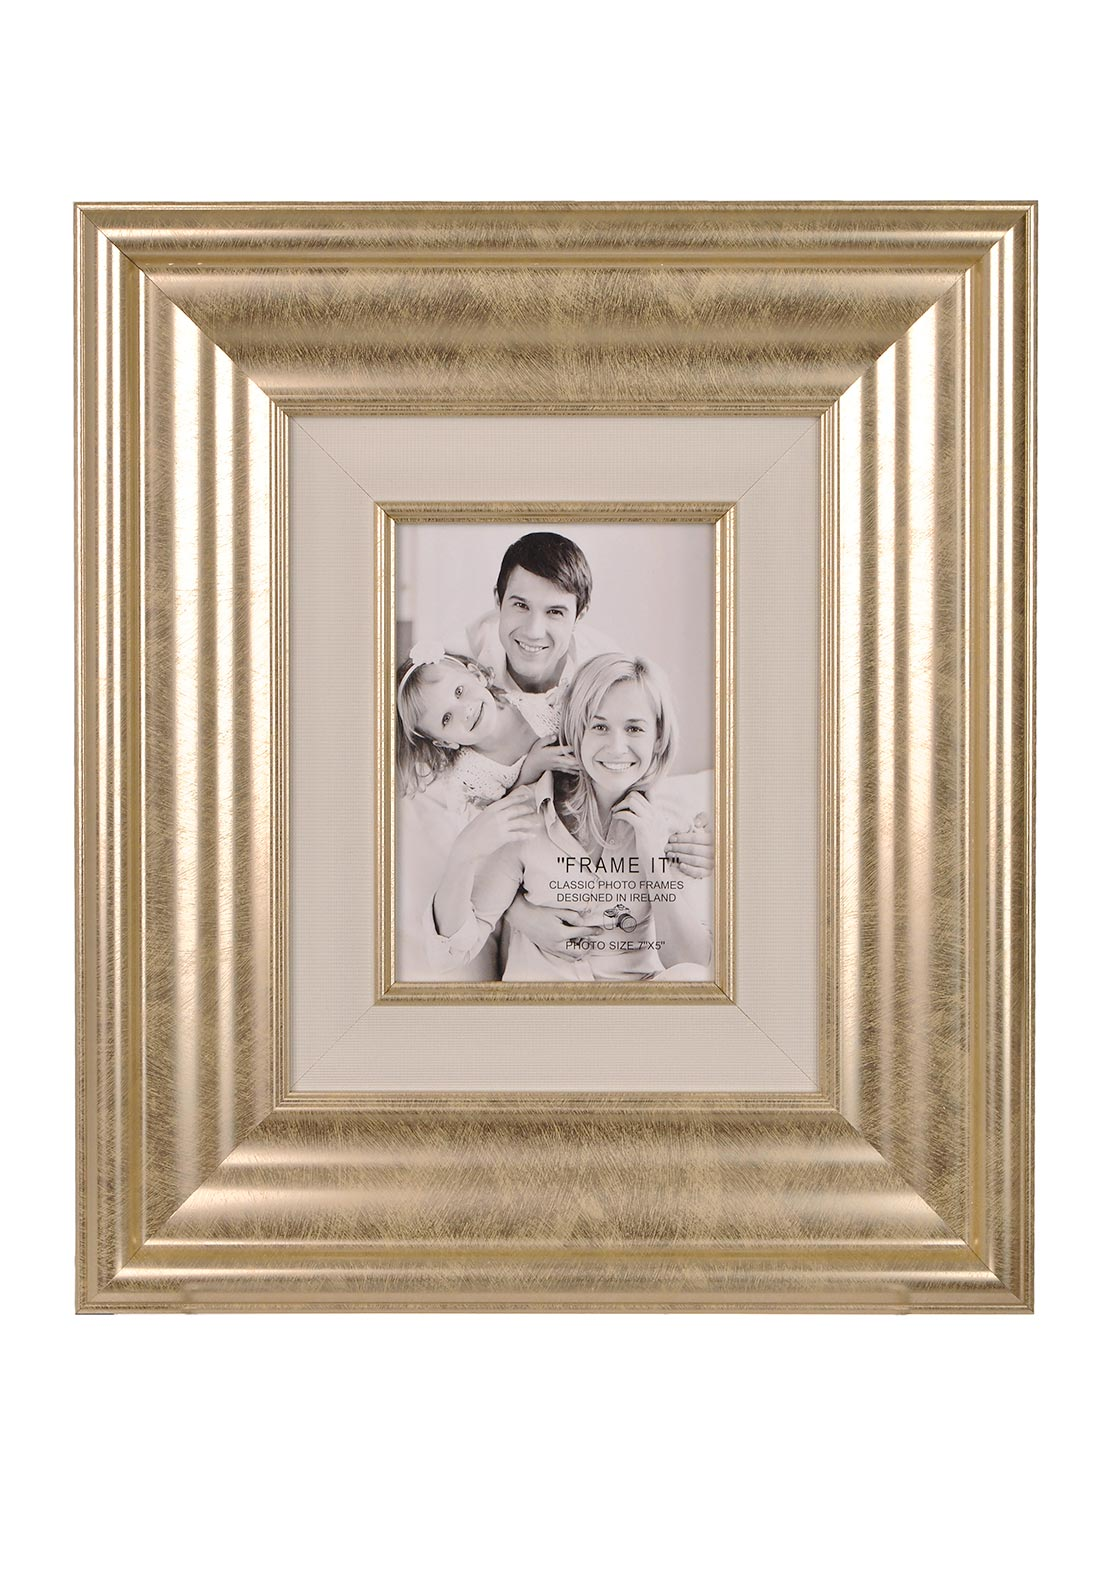 "McElhinneys Classic Frame It Photo Frame 7"" x 5"", Gold"